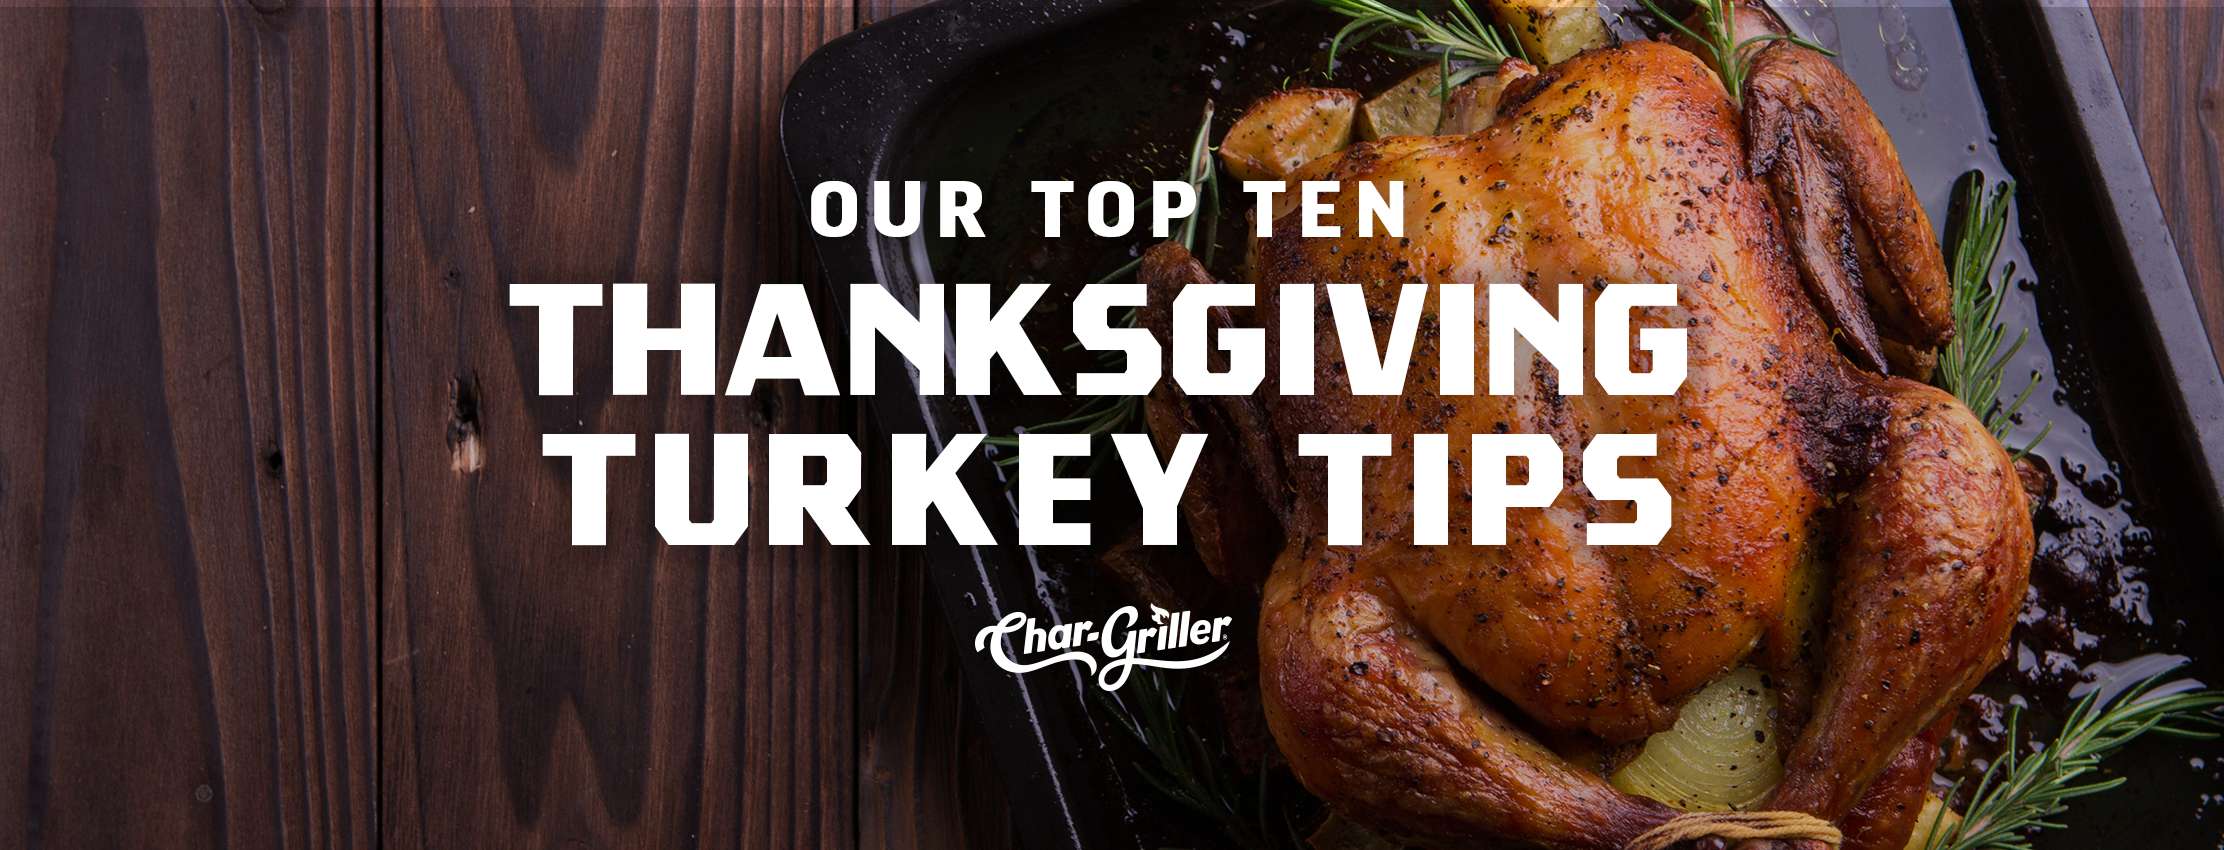 Top 10 Thanksgiving Turkey Tips